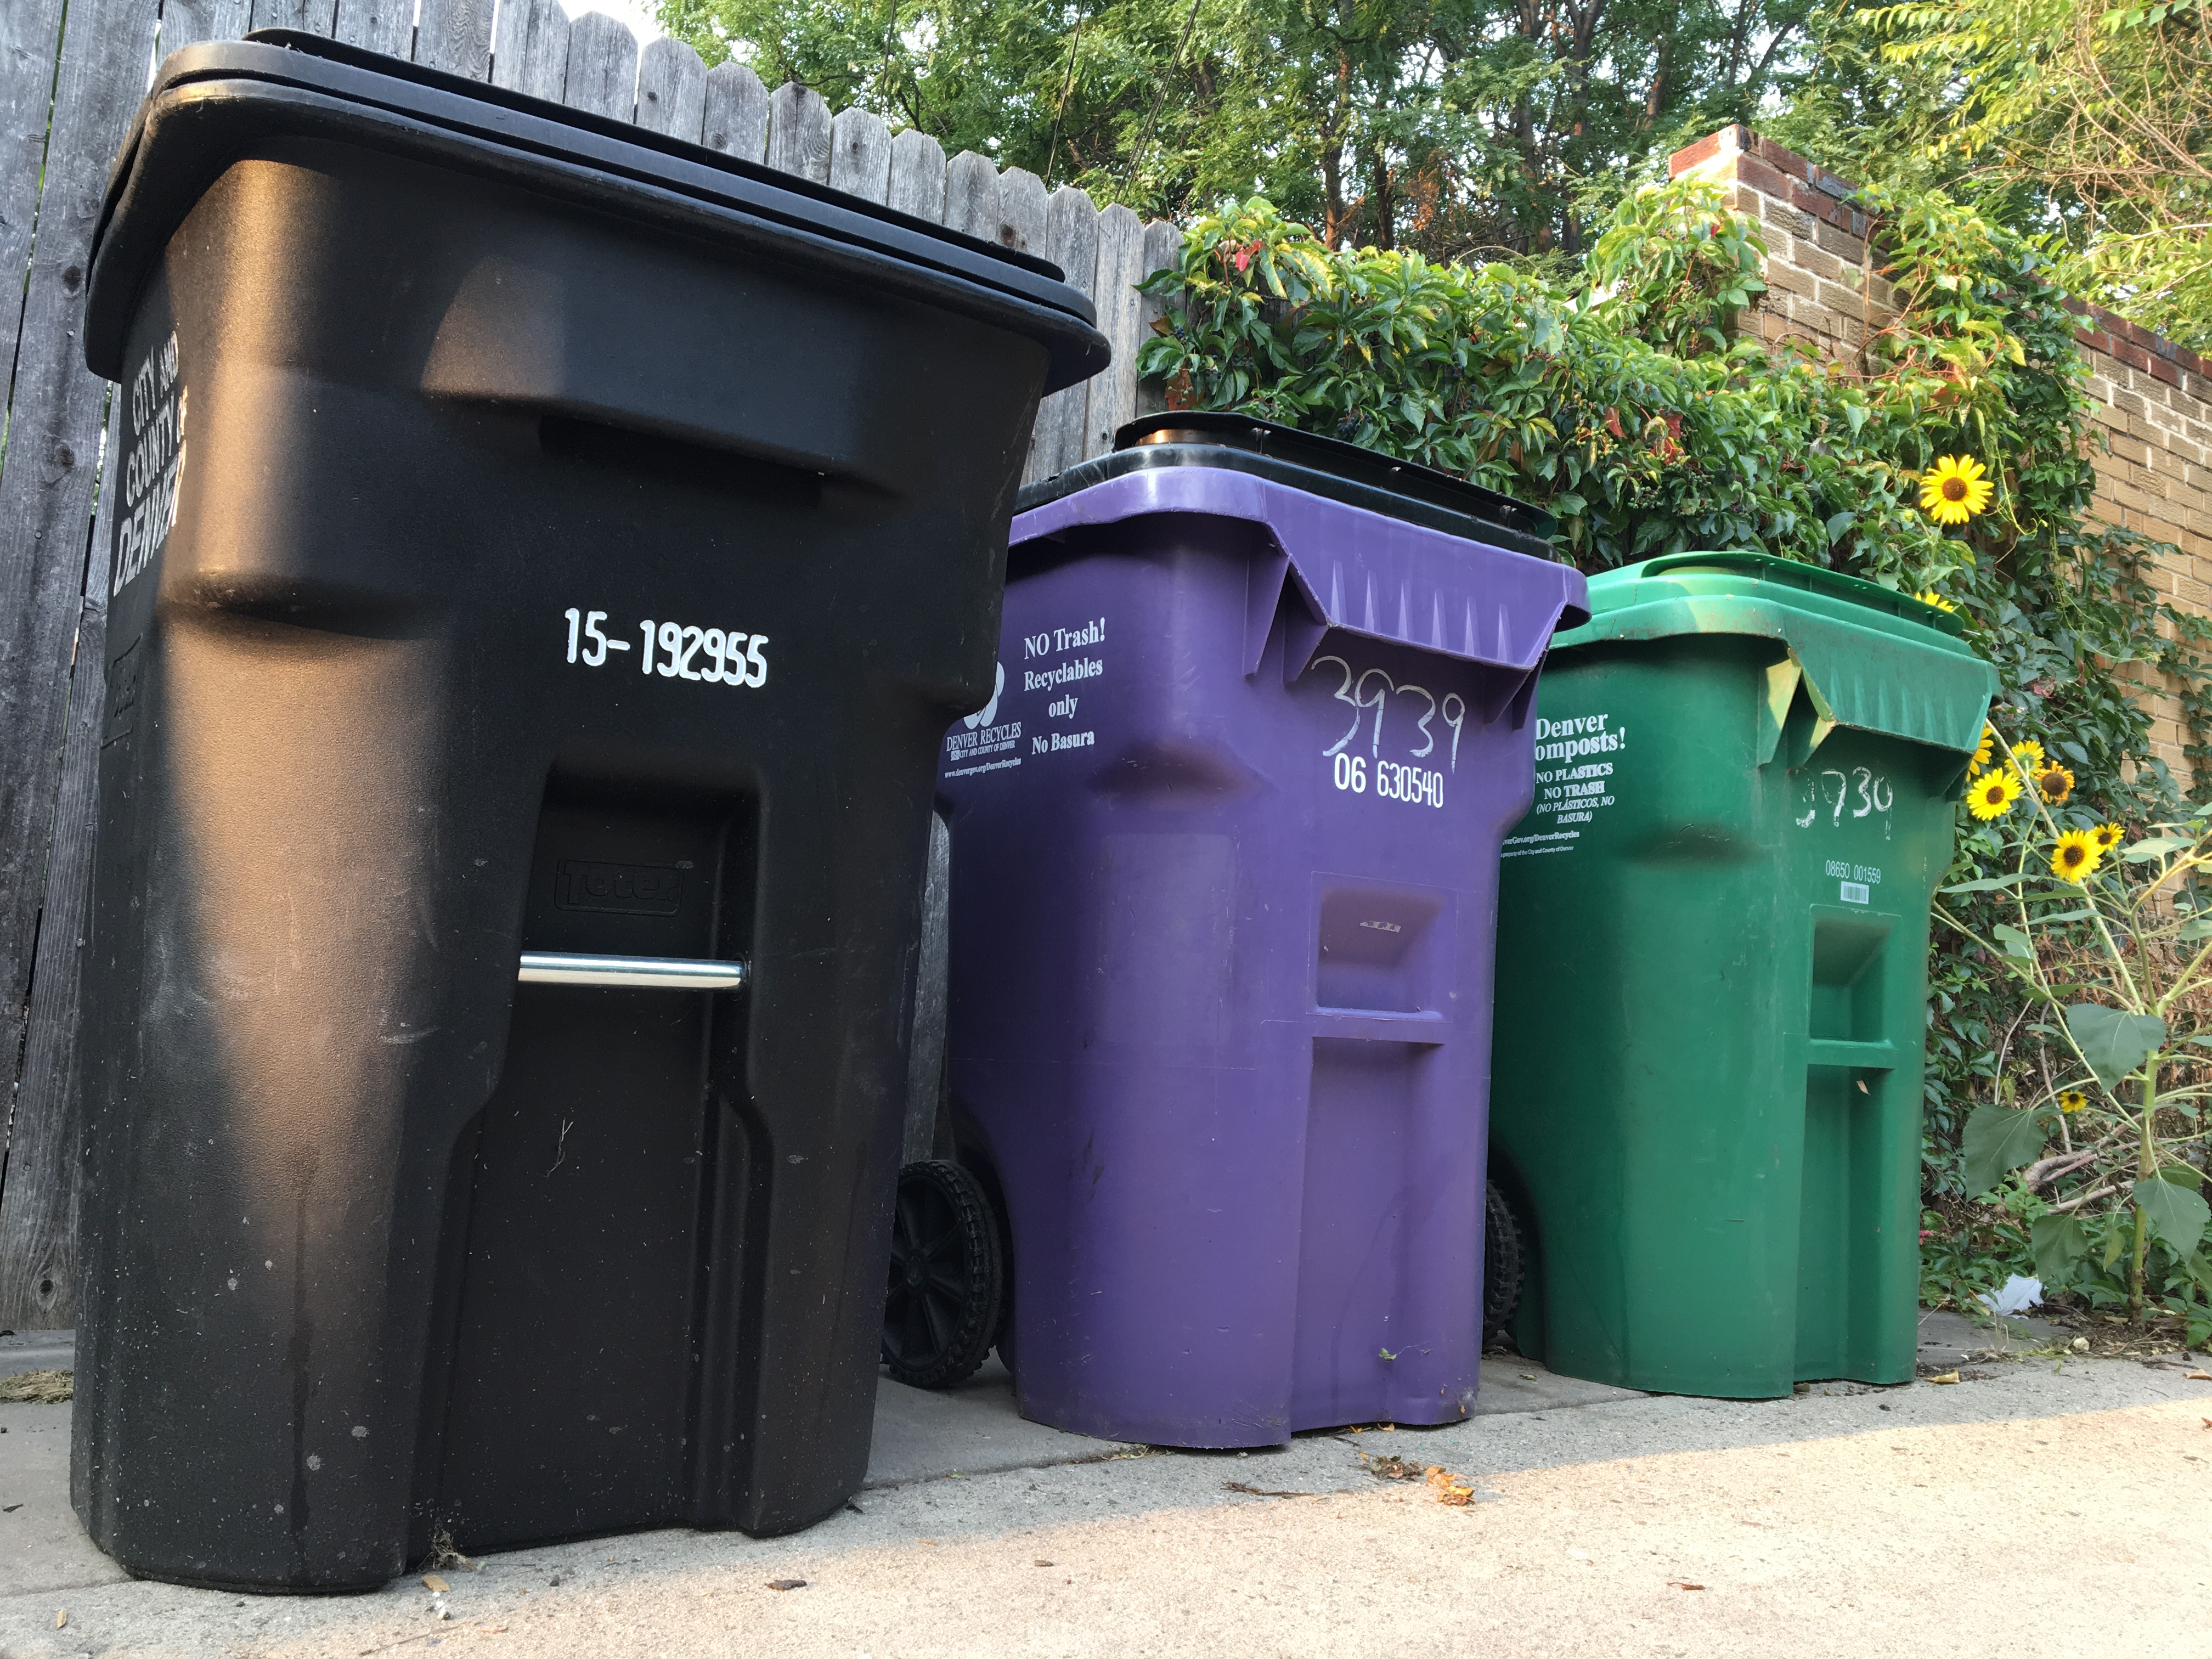 Photo: multiple Denver trash cans